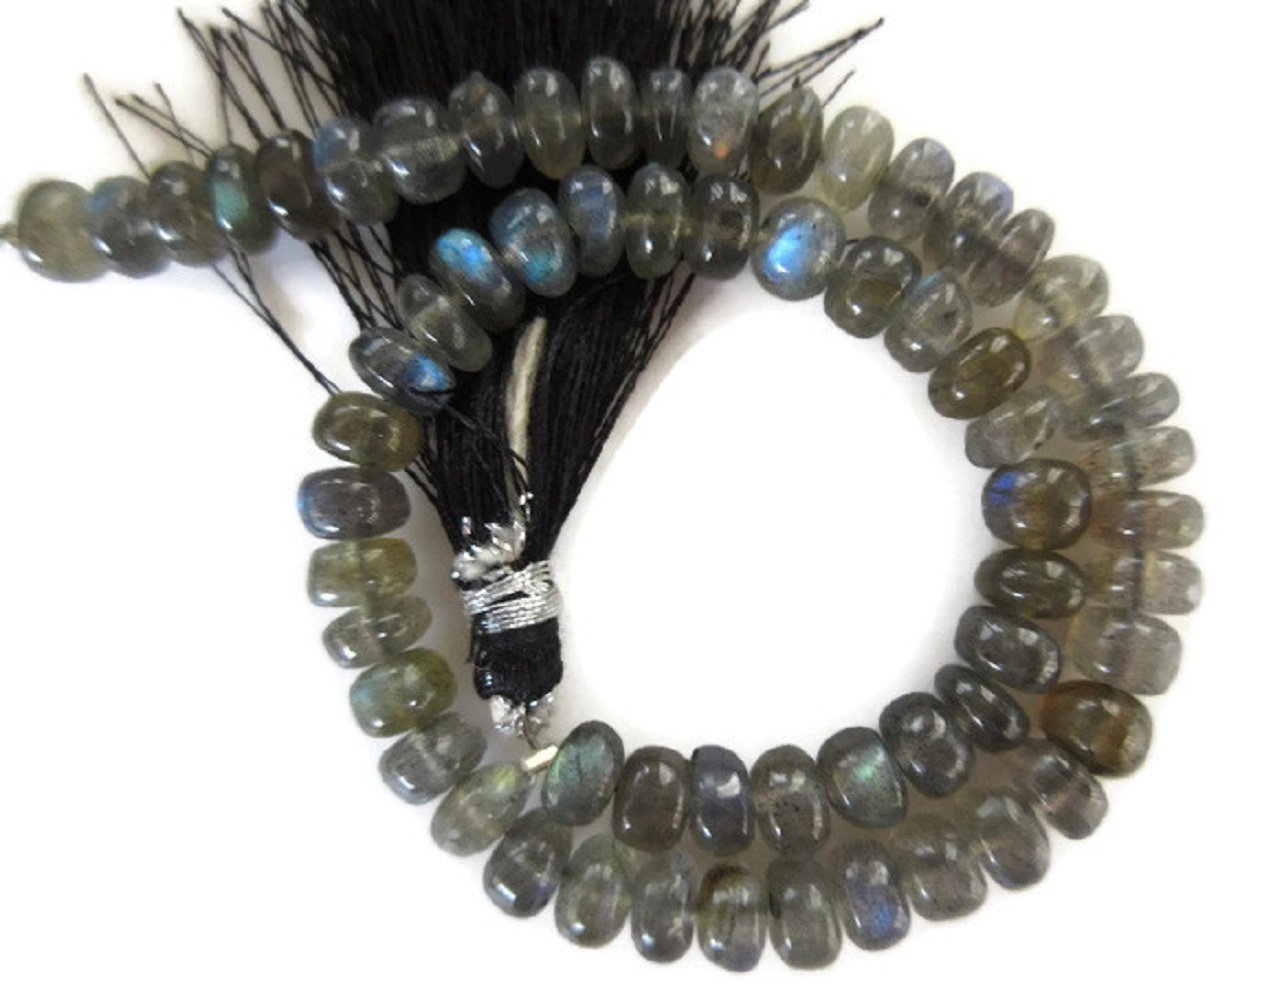 AAA Natural Labradorite Smooth Rondelle Beads, 6mm Labradorite Beads, Labradorite Jewelry, GDS961 (10 Inch x 5 Strands)